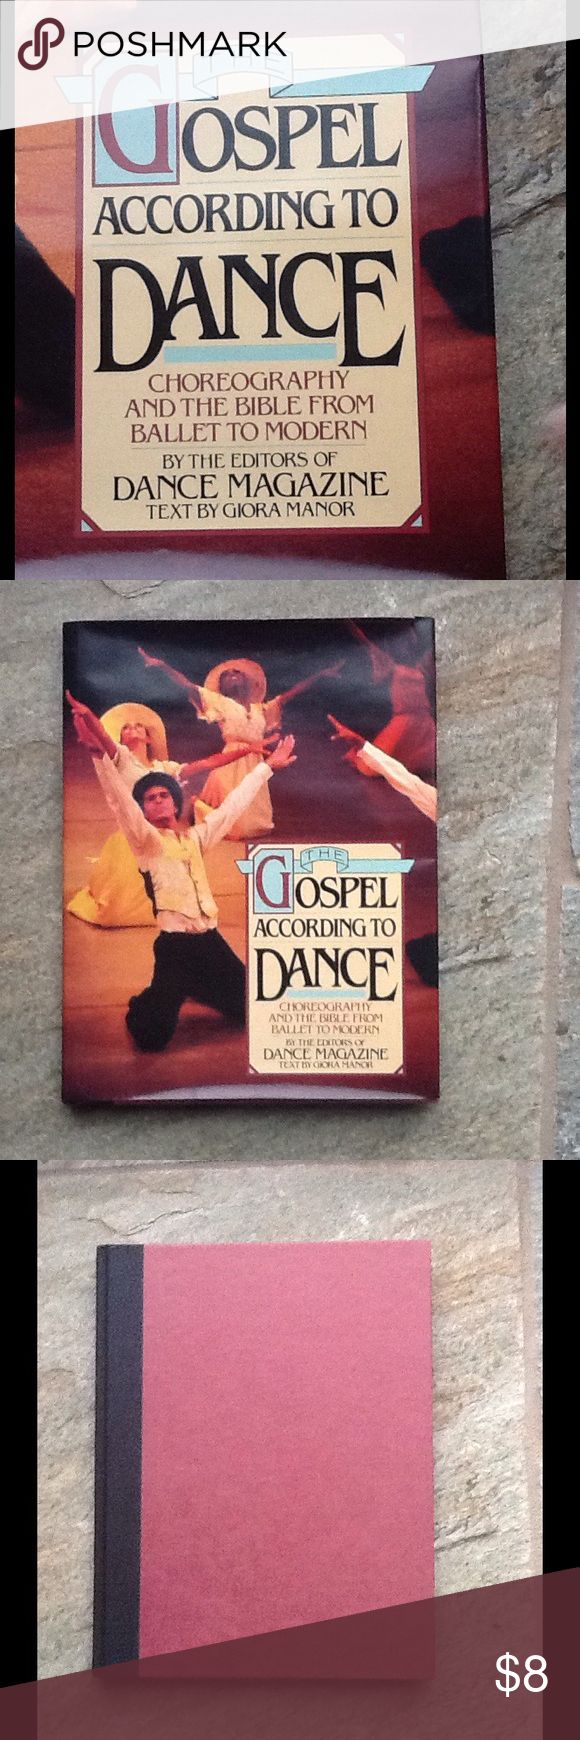 """""""The Gospel According to Dance"""" Vintage Book """"Choreography and the bible from ballet to modern by the editors of dance magazine."""" Text by Gloria Manor. This book is a celebration of dance with text and over 200 rare photographs. Portions of this book originally appeared in Dance Magazine, December 1978, under the title """"The Bible as Dance."""" Published in 1980. Black and white photos. Hardcover with dust jacket. Dust jacket is slightly damaged, but the book itself is in mint condition. St…"""